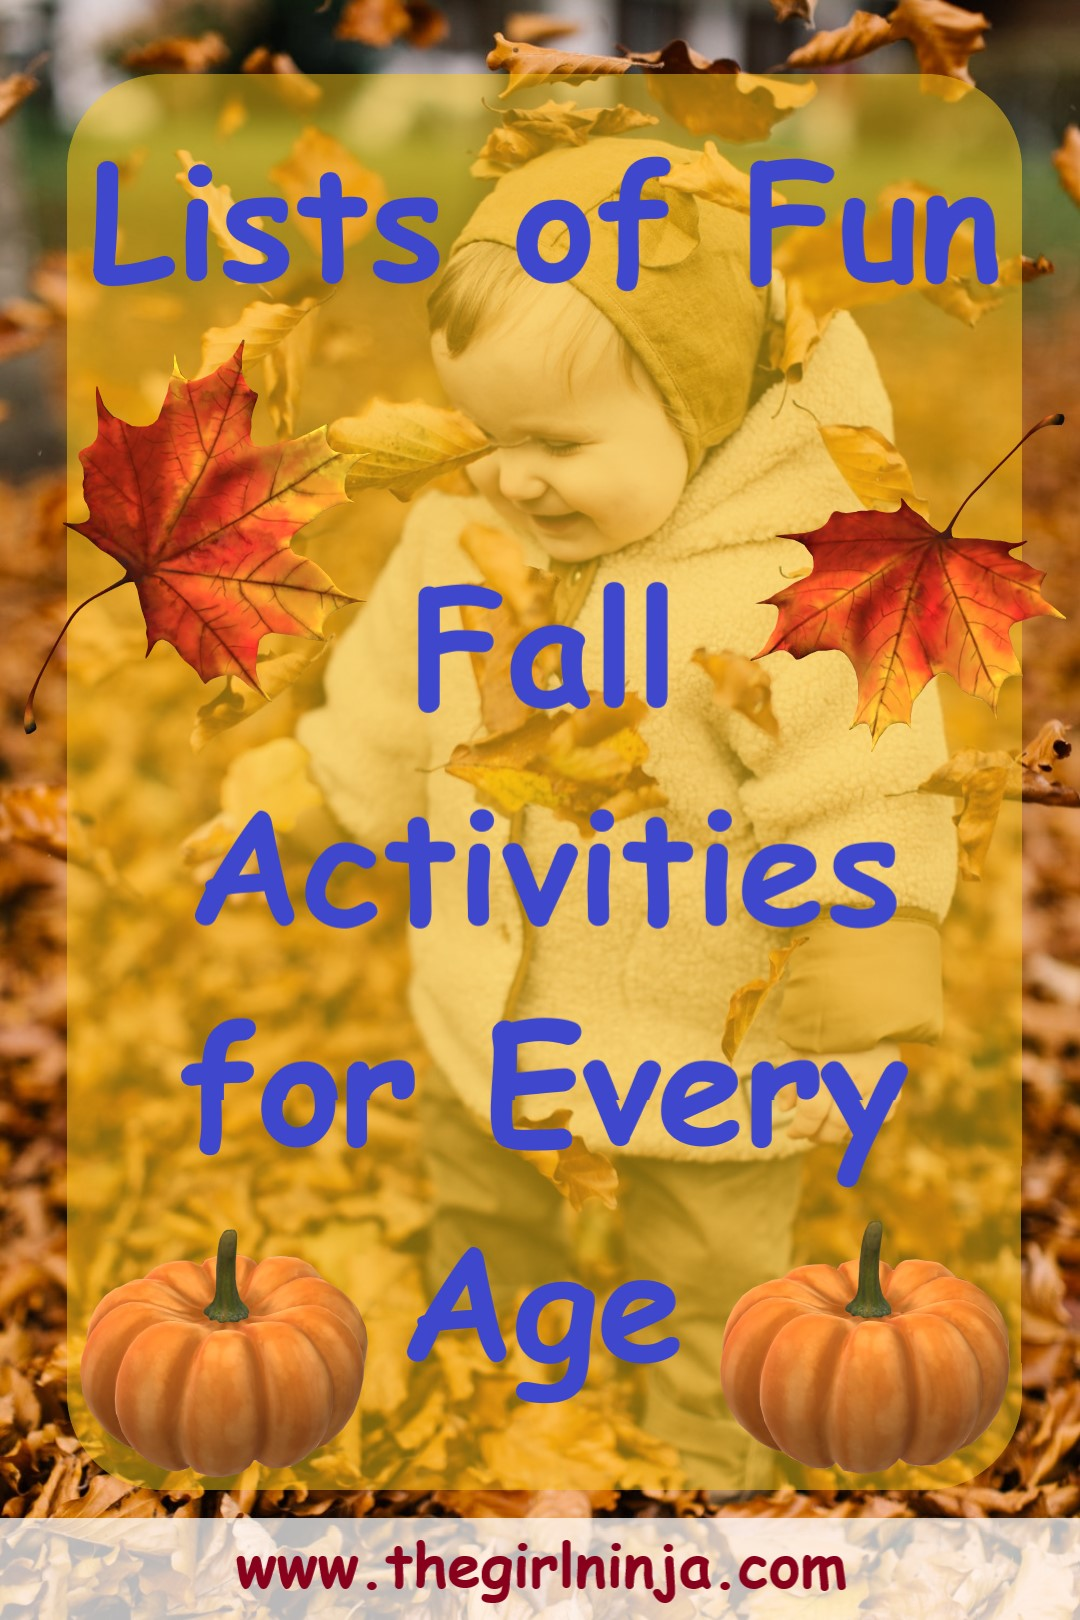 Toddler in fuzzy coat and hat stands smiling in leaves with leaves falling around them. Blue text reads Lists of Fun Fall Activities for Every Age www.thegirlninja.com